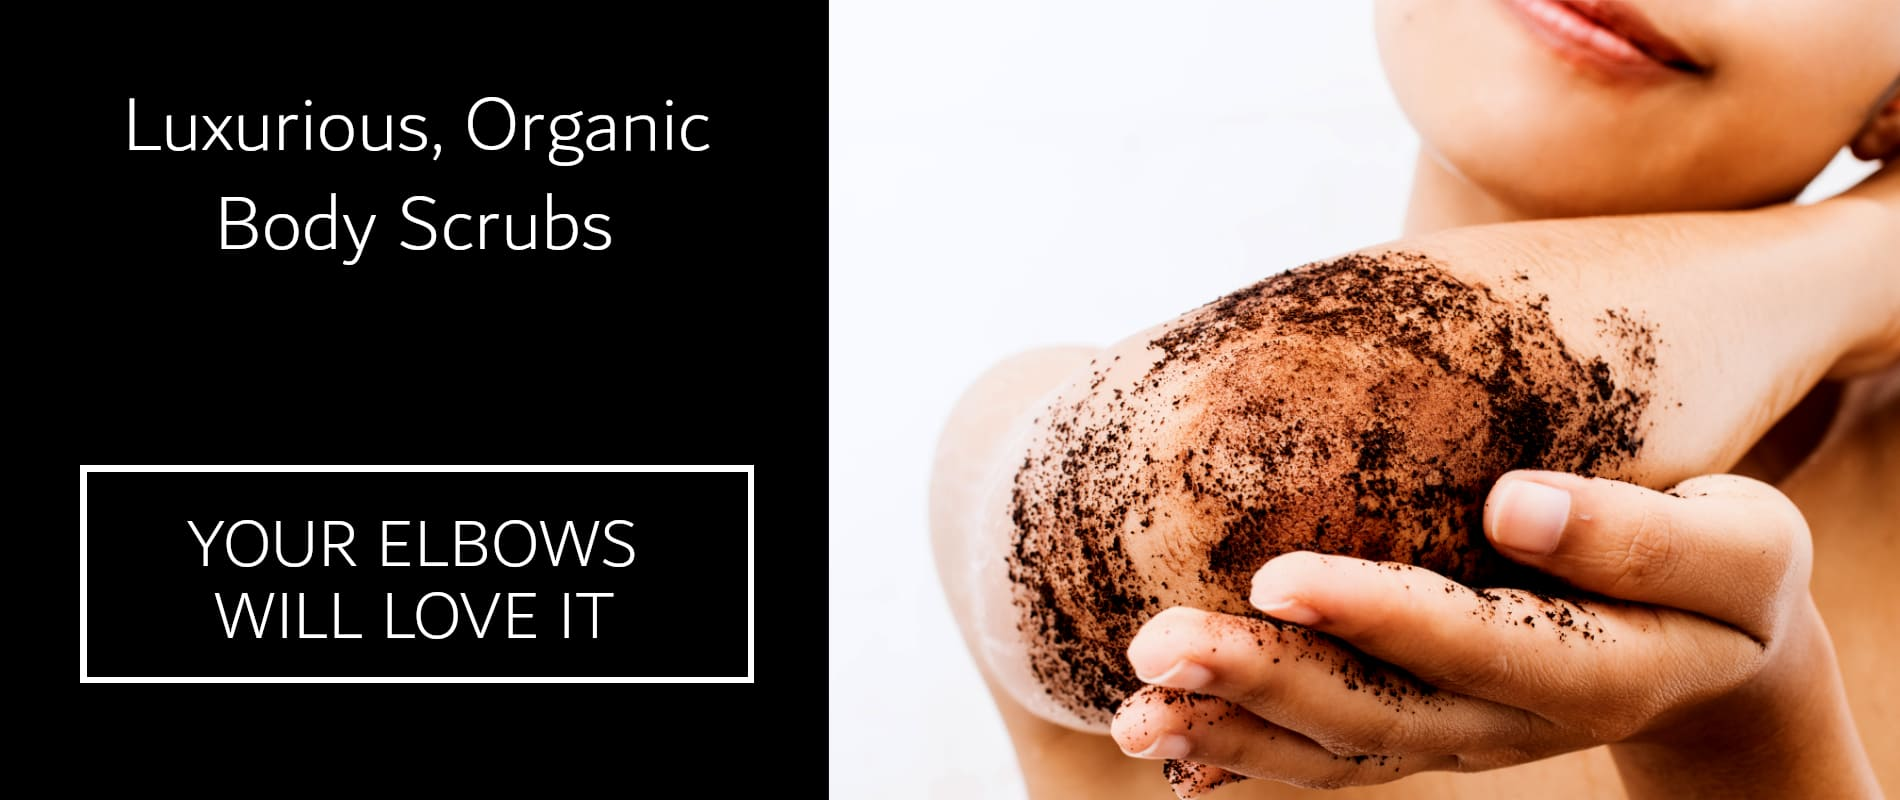 pureSCRUBS® luxury organic body scrubs to exfoliate your elbows for beautiful skin - softer, smoother, healthier glowing skin - your elbows will love it.